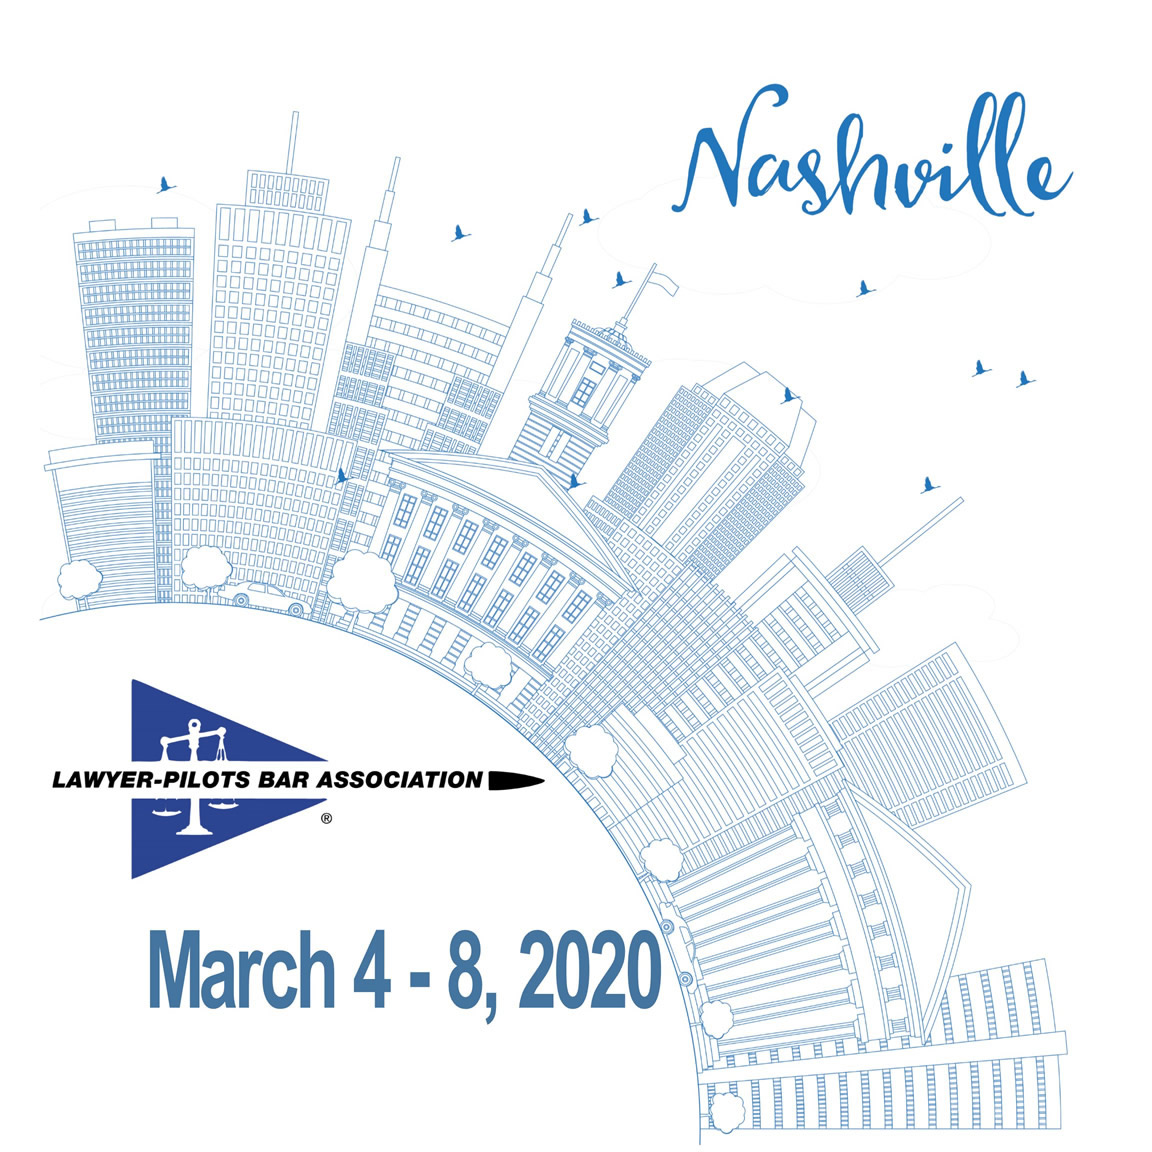 LPBA Winter 2020 Convention, Nashville, TN